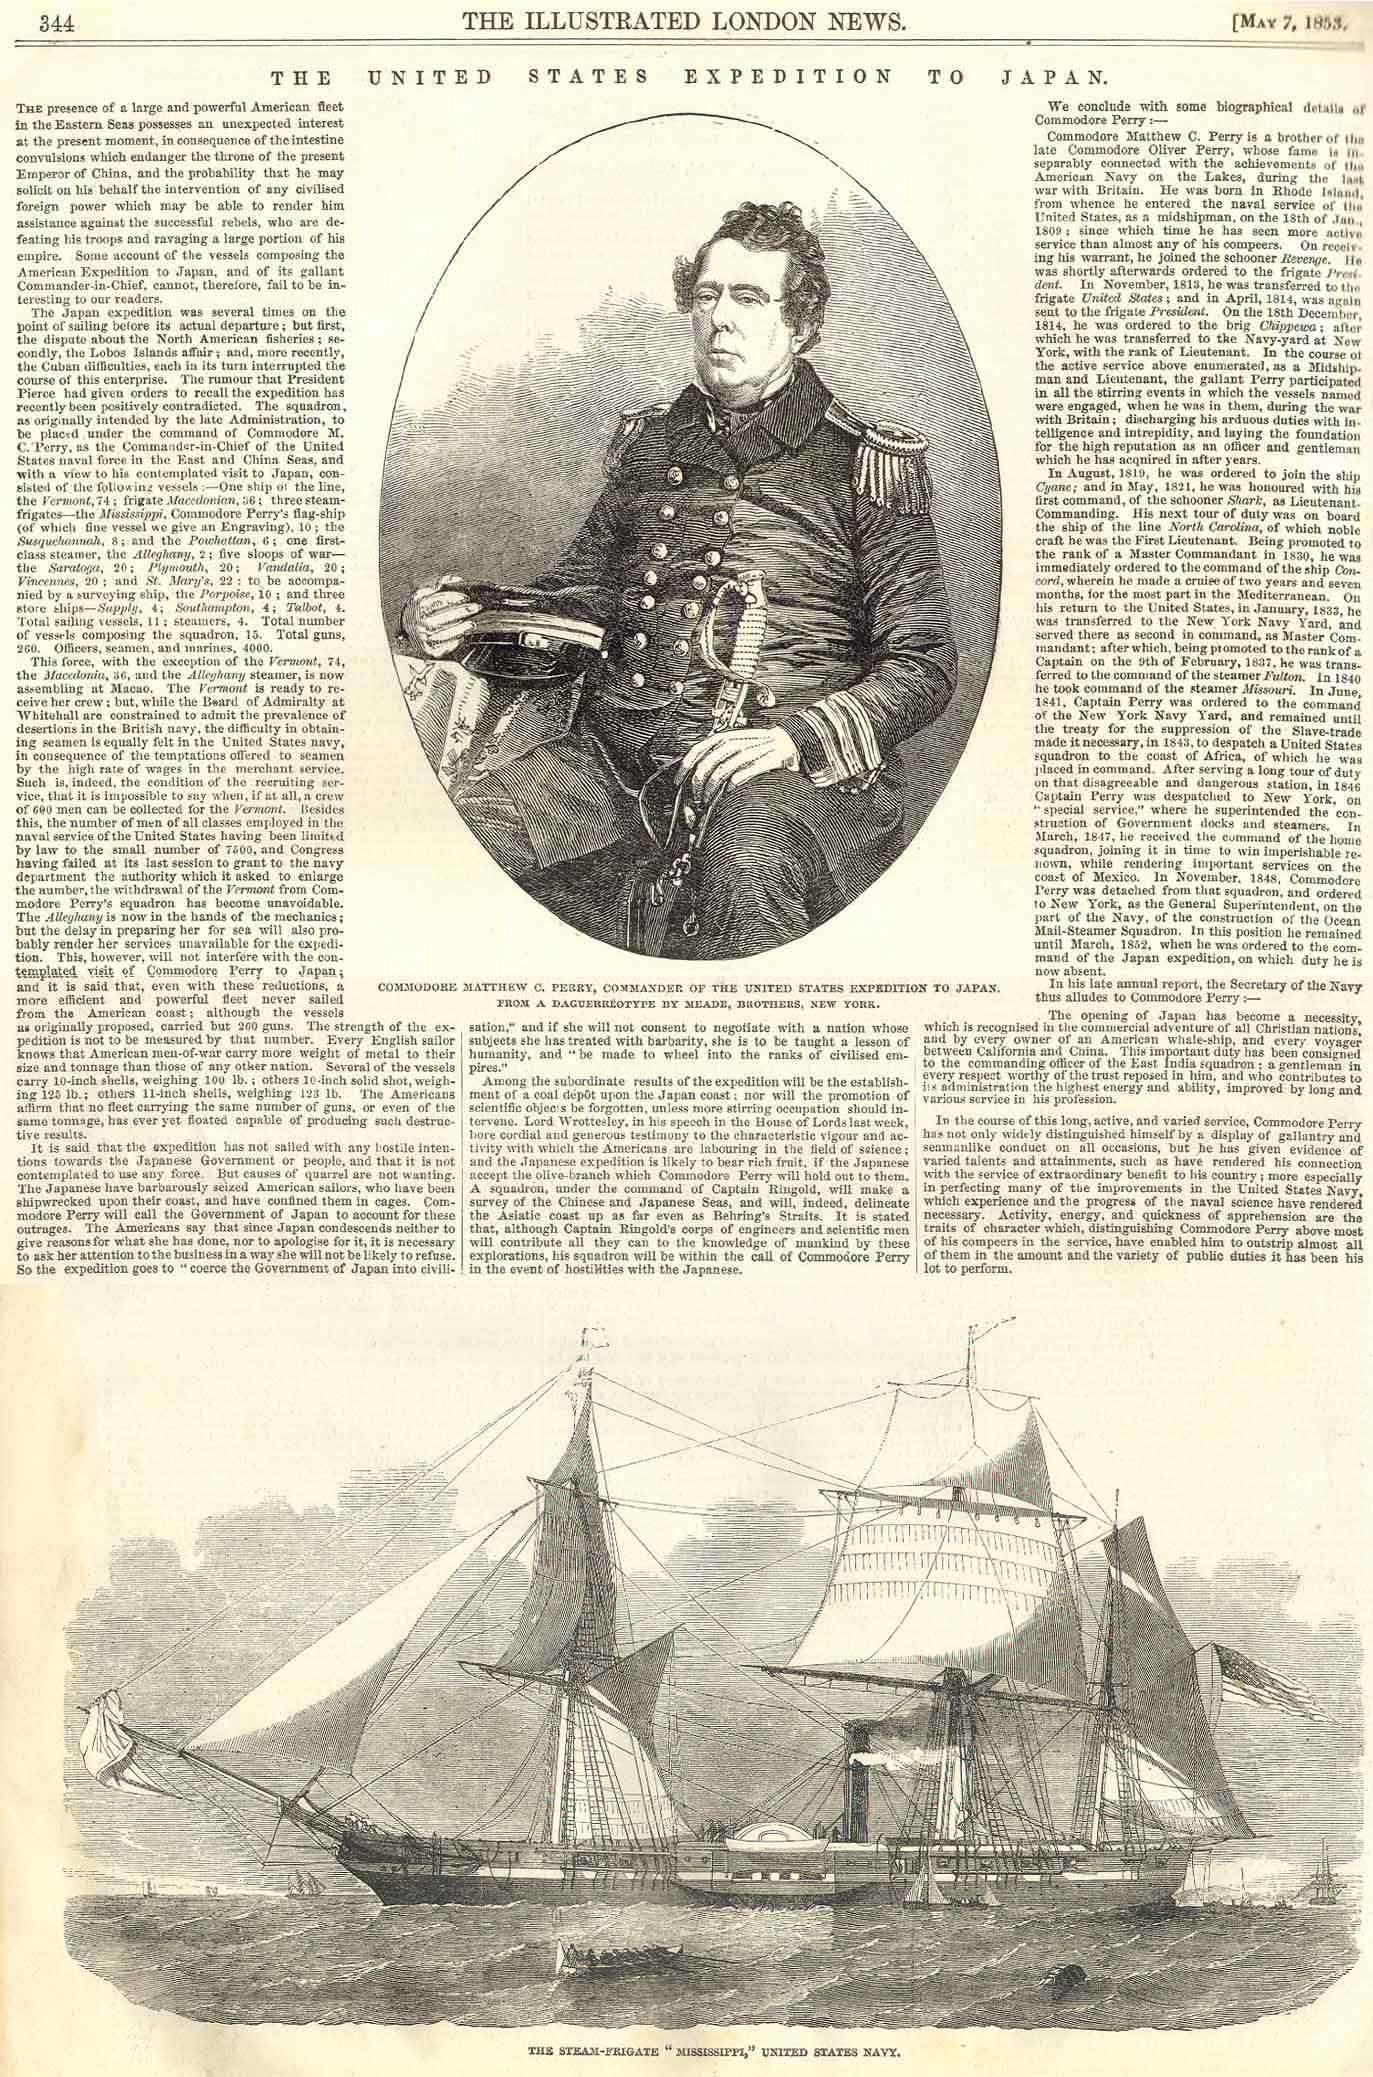 Article about Perry's first expedition to Japan published in the Illustrated London News, May 7, 1853.